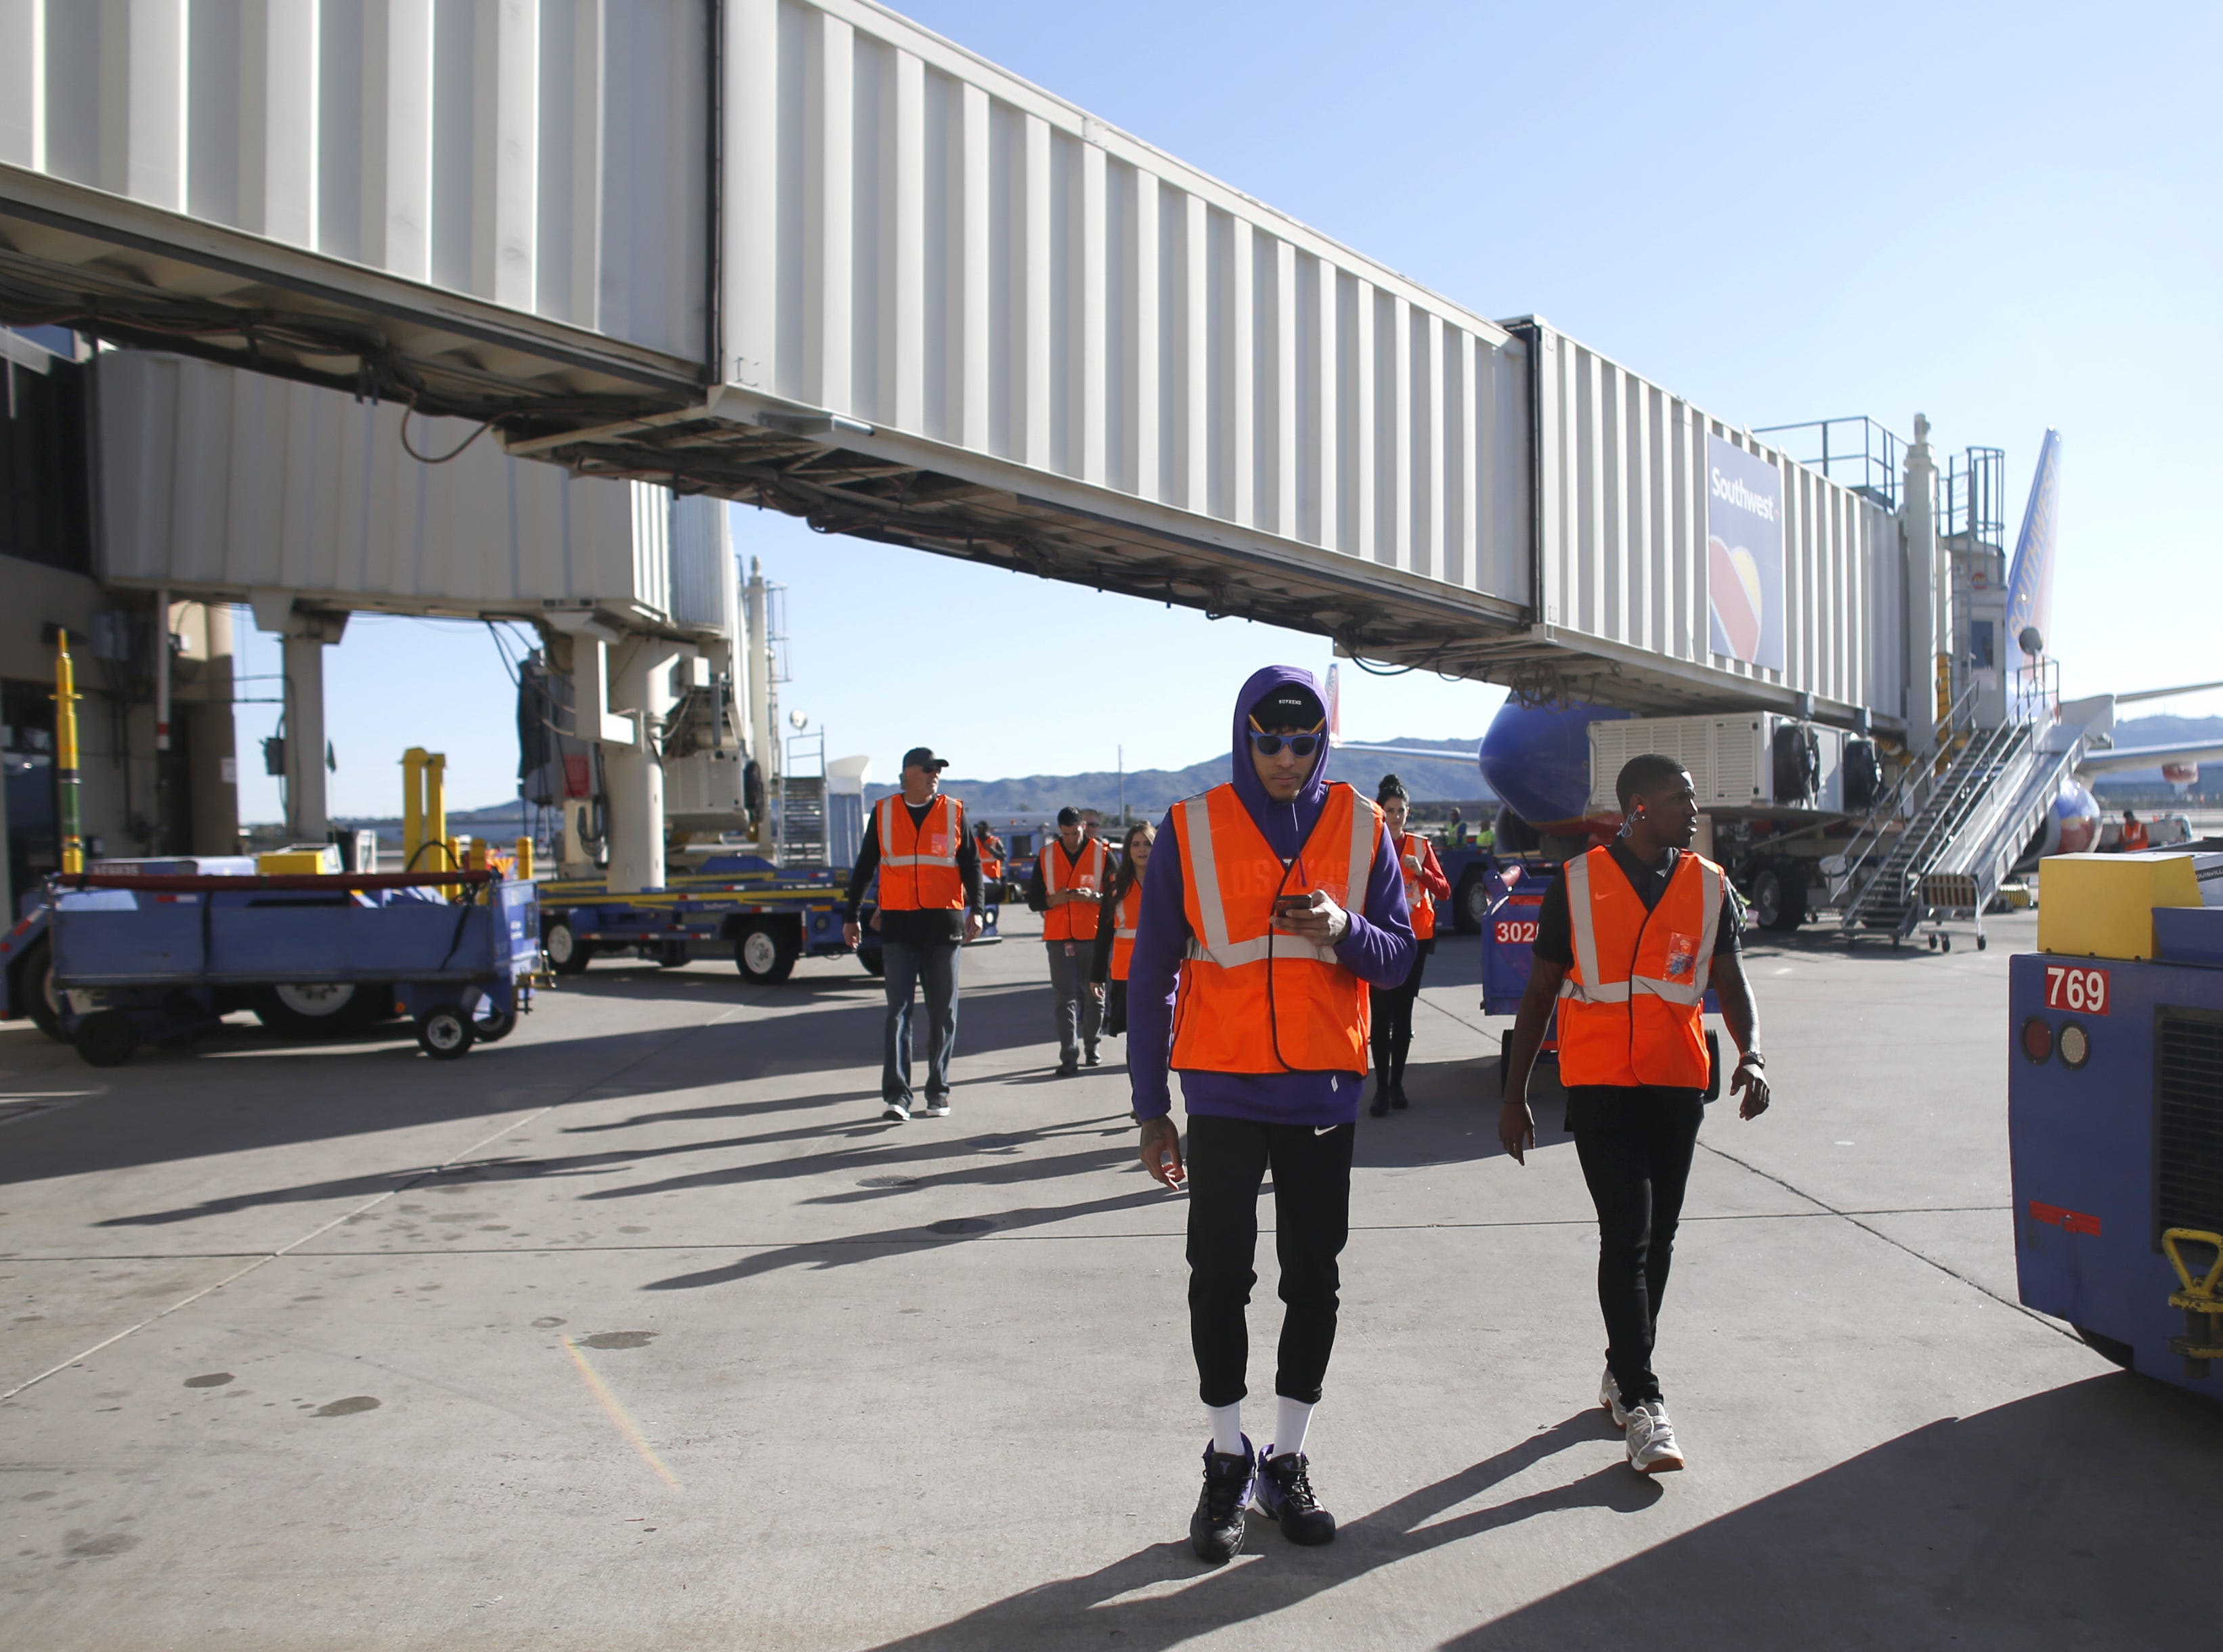 "Suns' Kelly Oubre and Jawun Evans make their way on the tarmac during a Suns and Southwest ""trading places"" event where players took on the roles of Southwest Airlines employees at Phoenix Sky Harbor Airport in Phoenix, Ariz. on February 7, 2019."